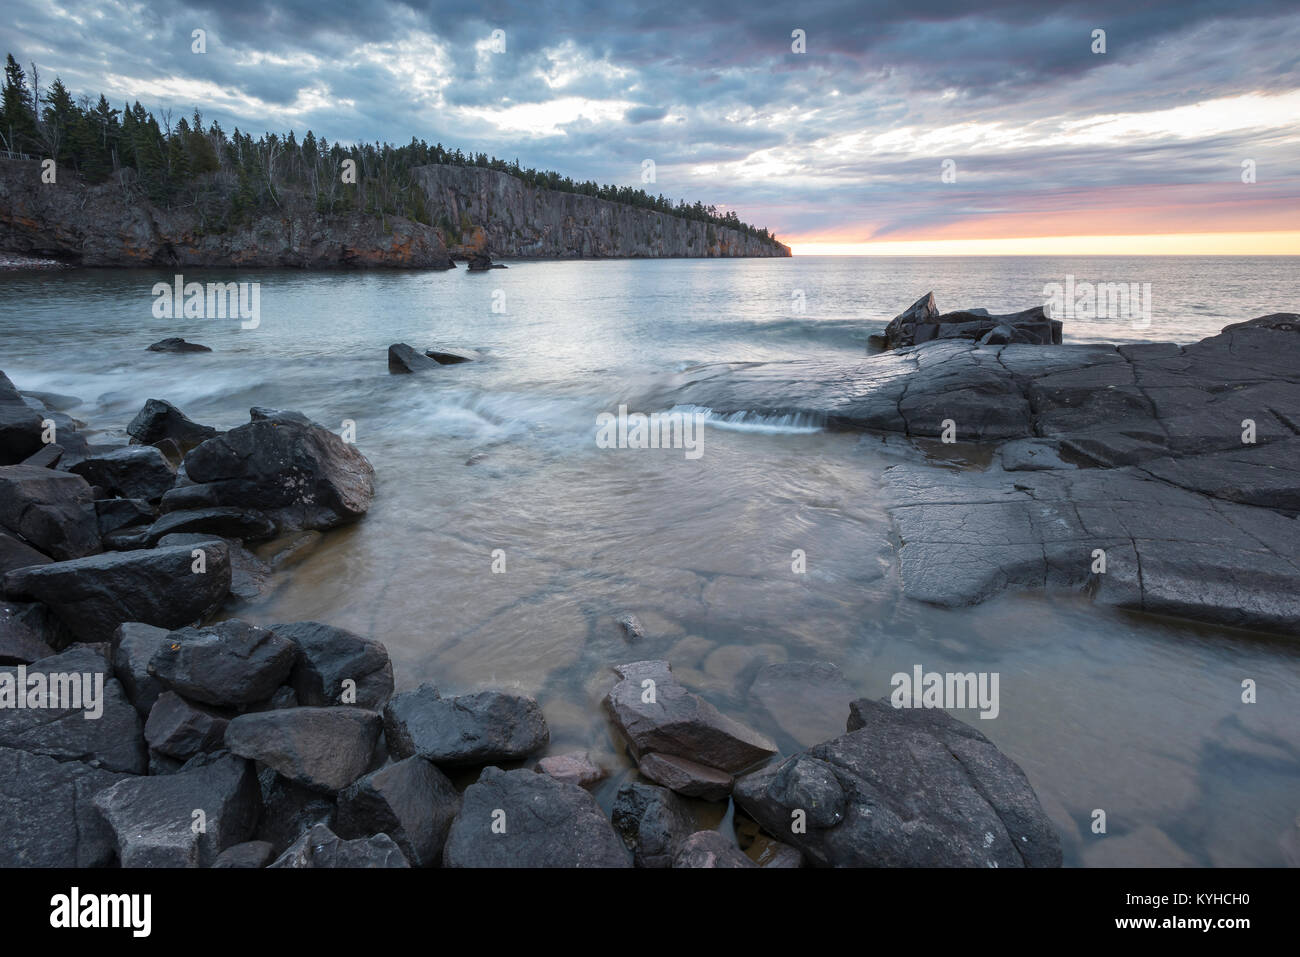 Lake Superior, Shovel Point,Tettegouche State Park, MN, USA, by Dominique Braud/Dembinsky Photo Assoc - Stock Image